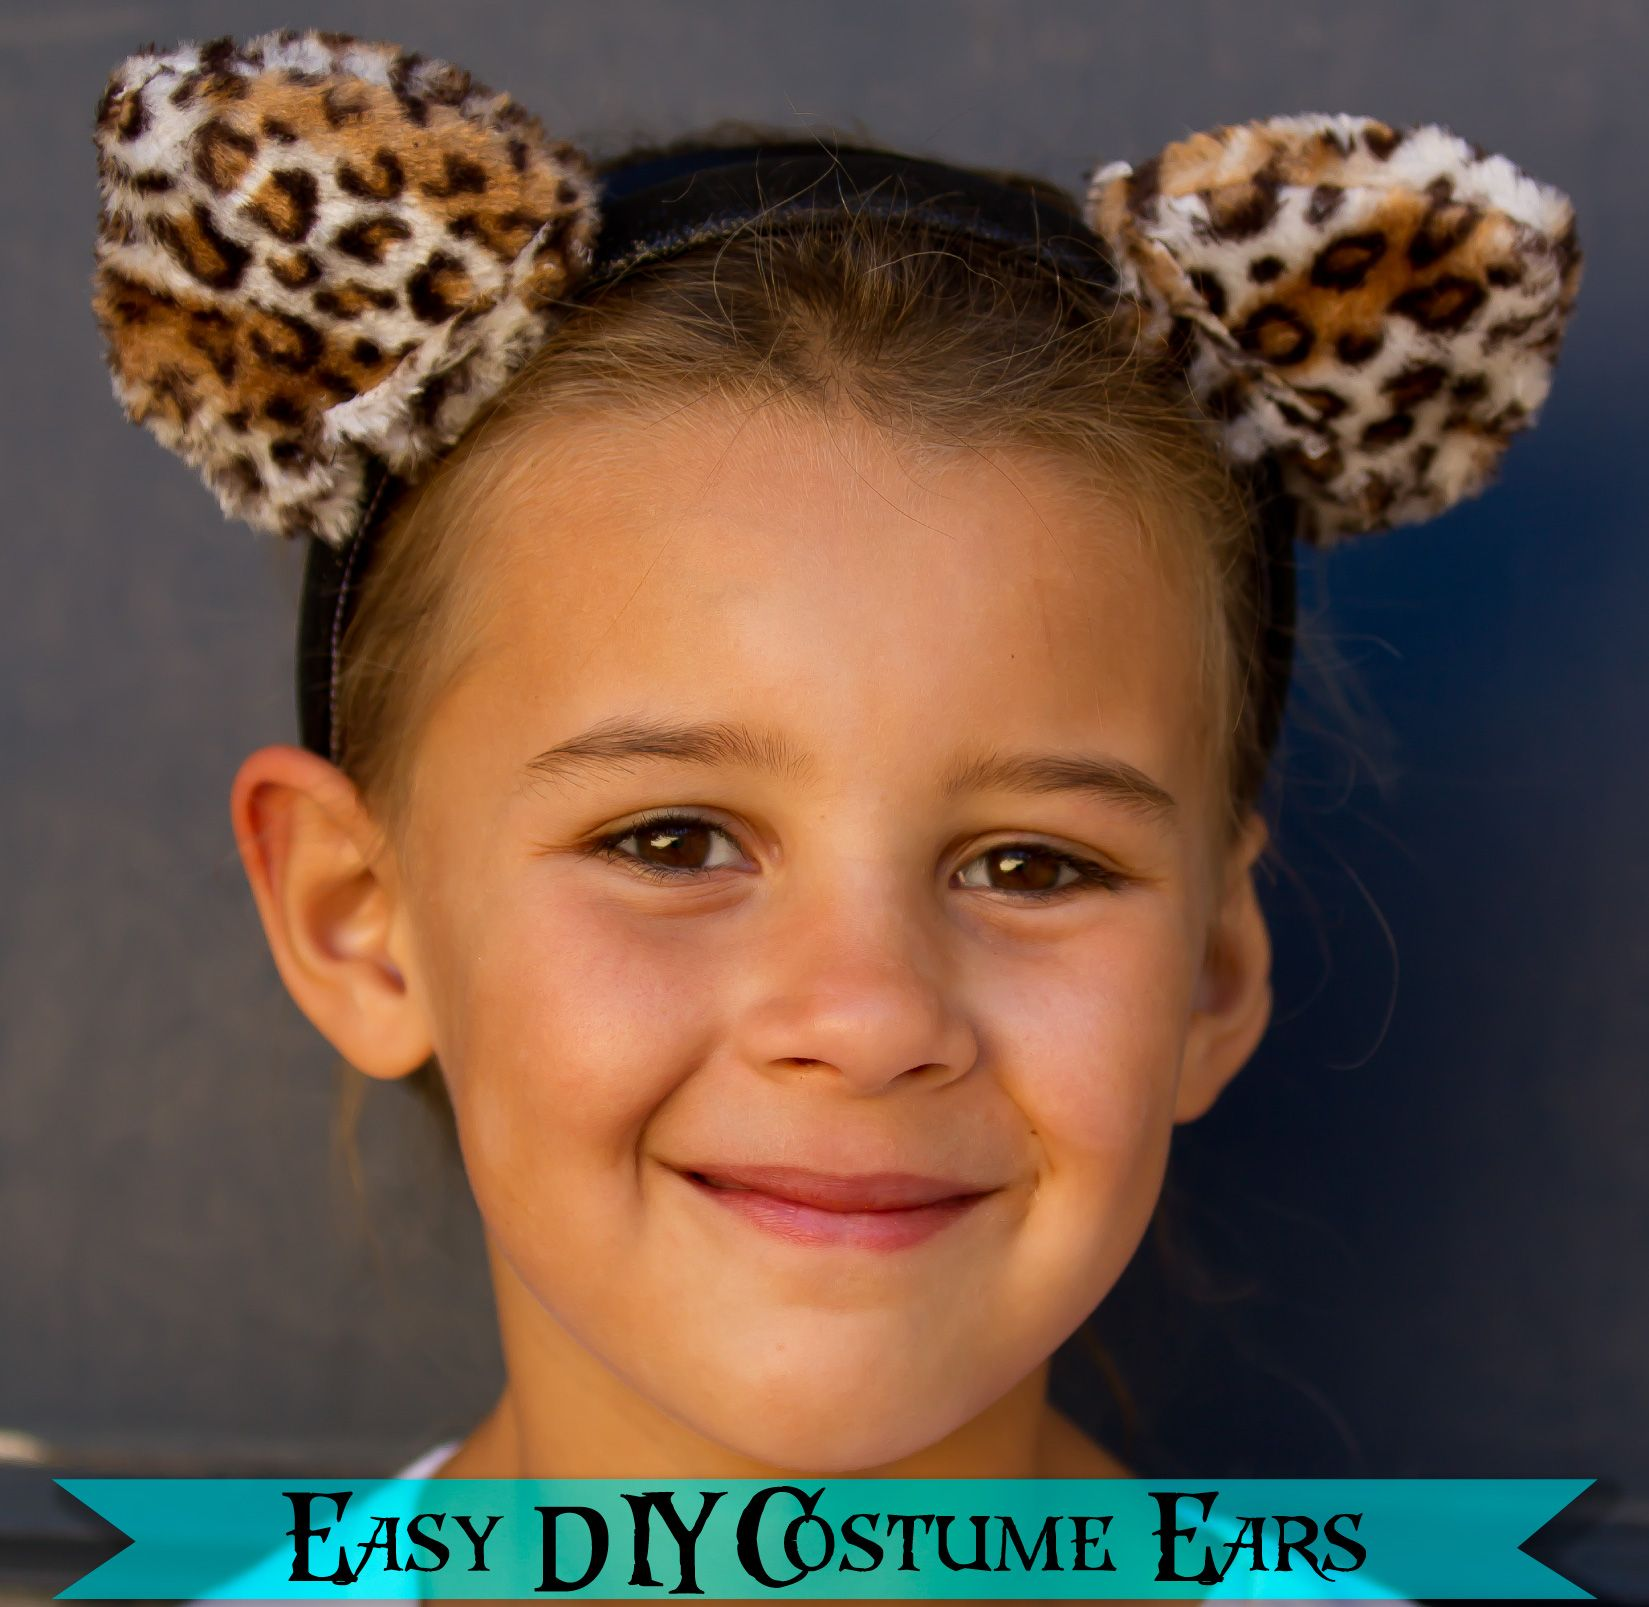 Quick, easy DIY animal ears tutorial. Make a cat, dog, mouse, monkey or any you choose!